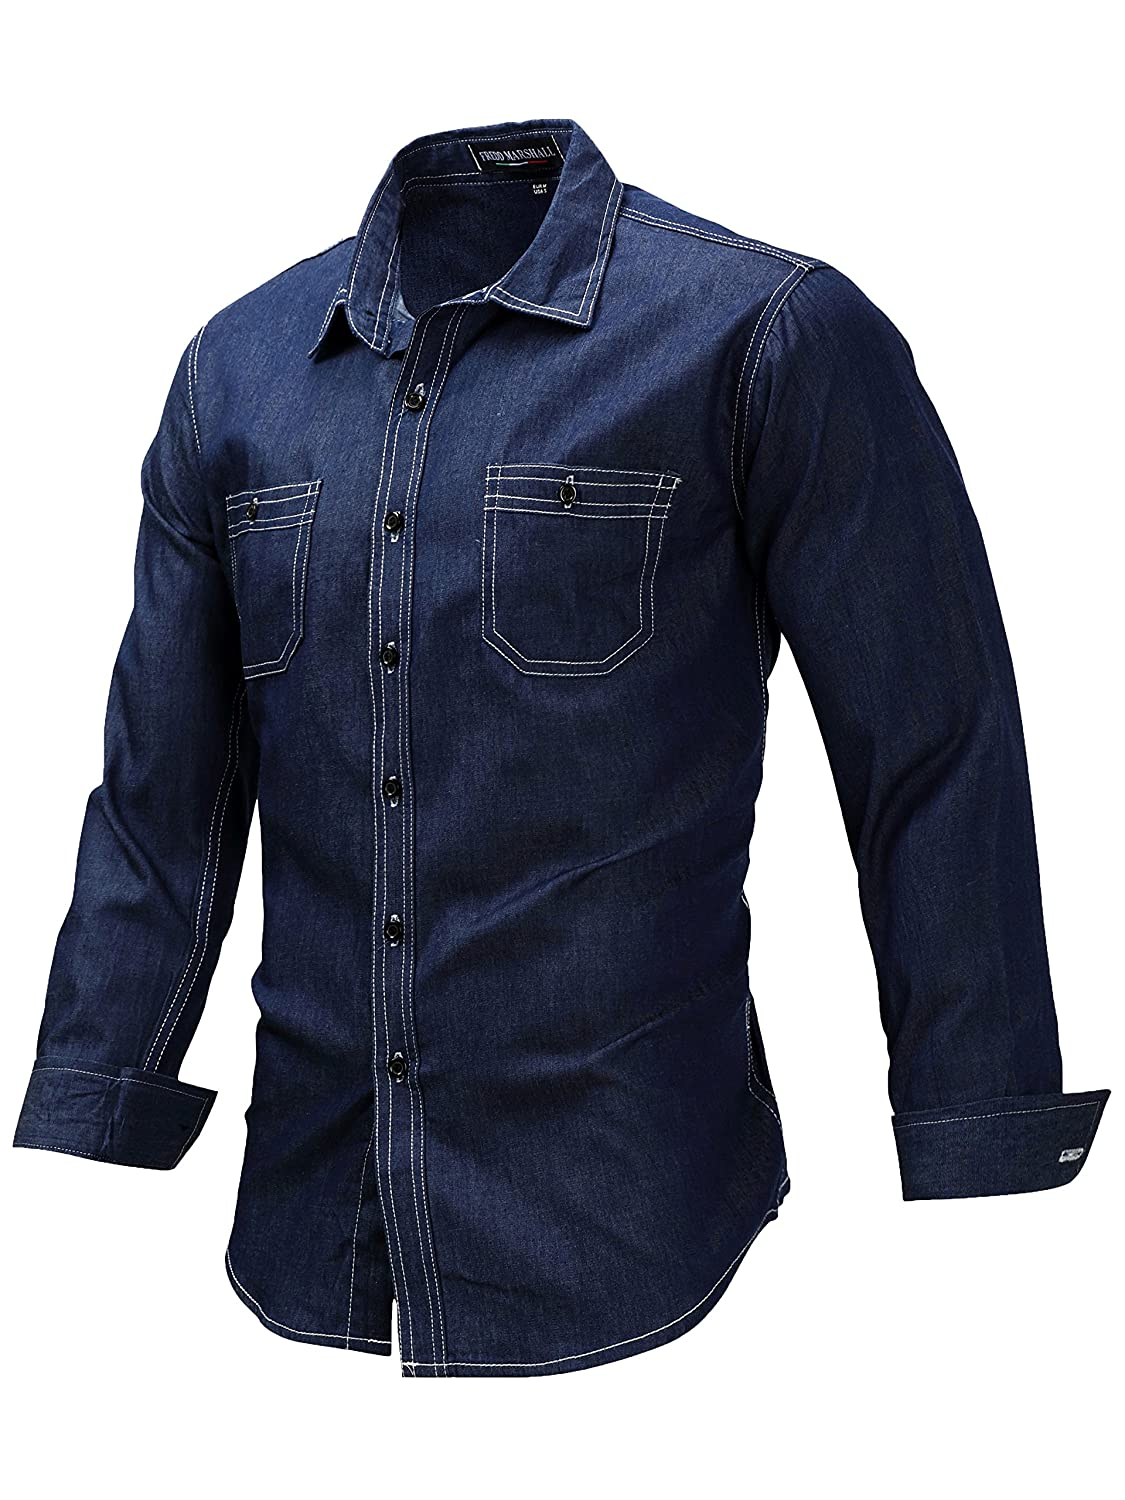 Neleus SHIRT メンズ B07584SSZ2 Large+ /Fit Chest:43.5-46"